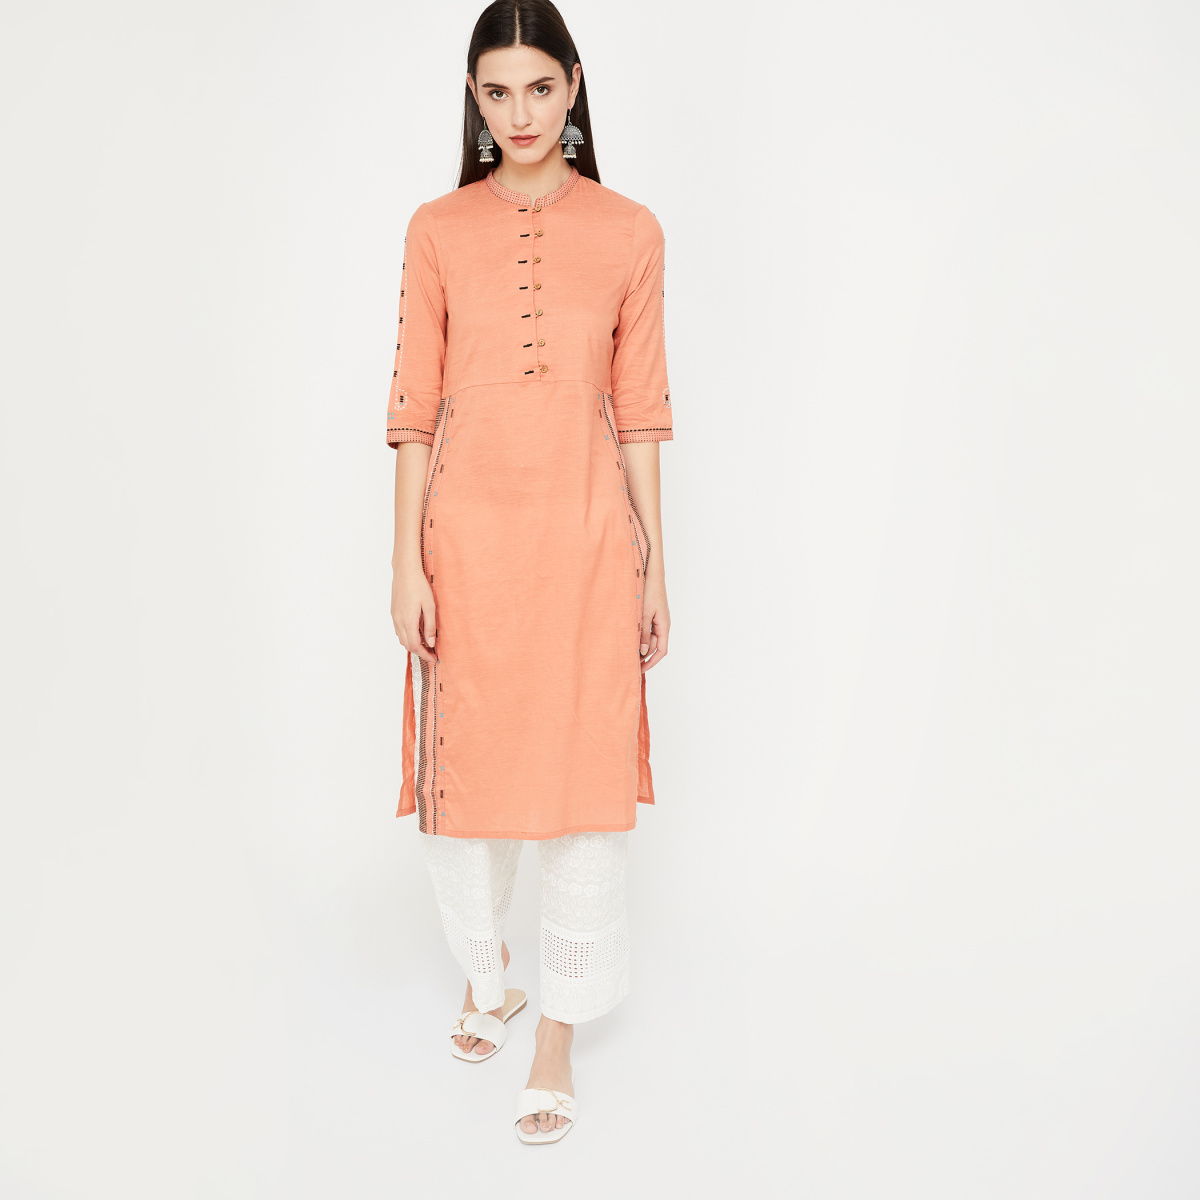 W Band Collar Three-Quarter Sleeves Kurta in Woven Design